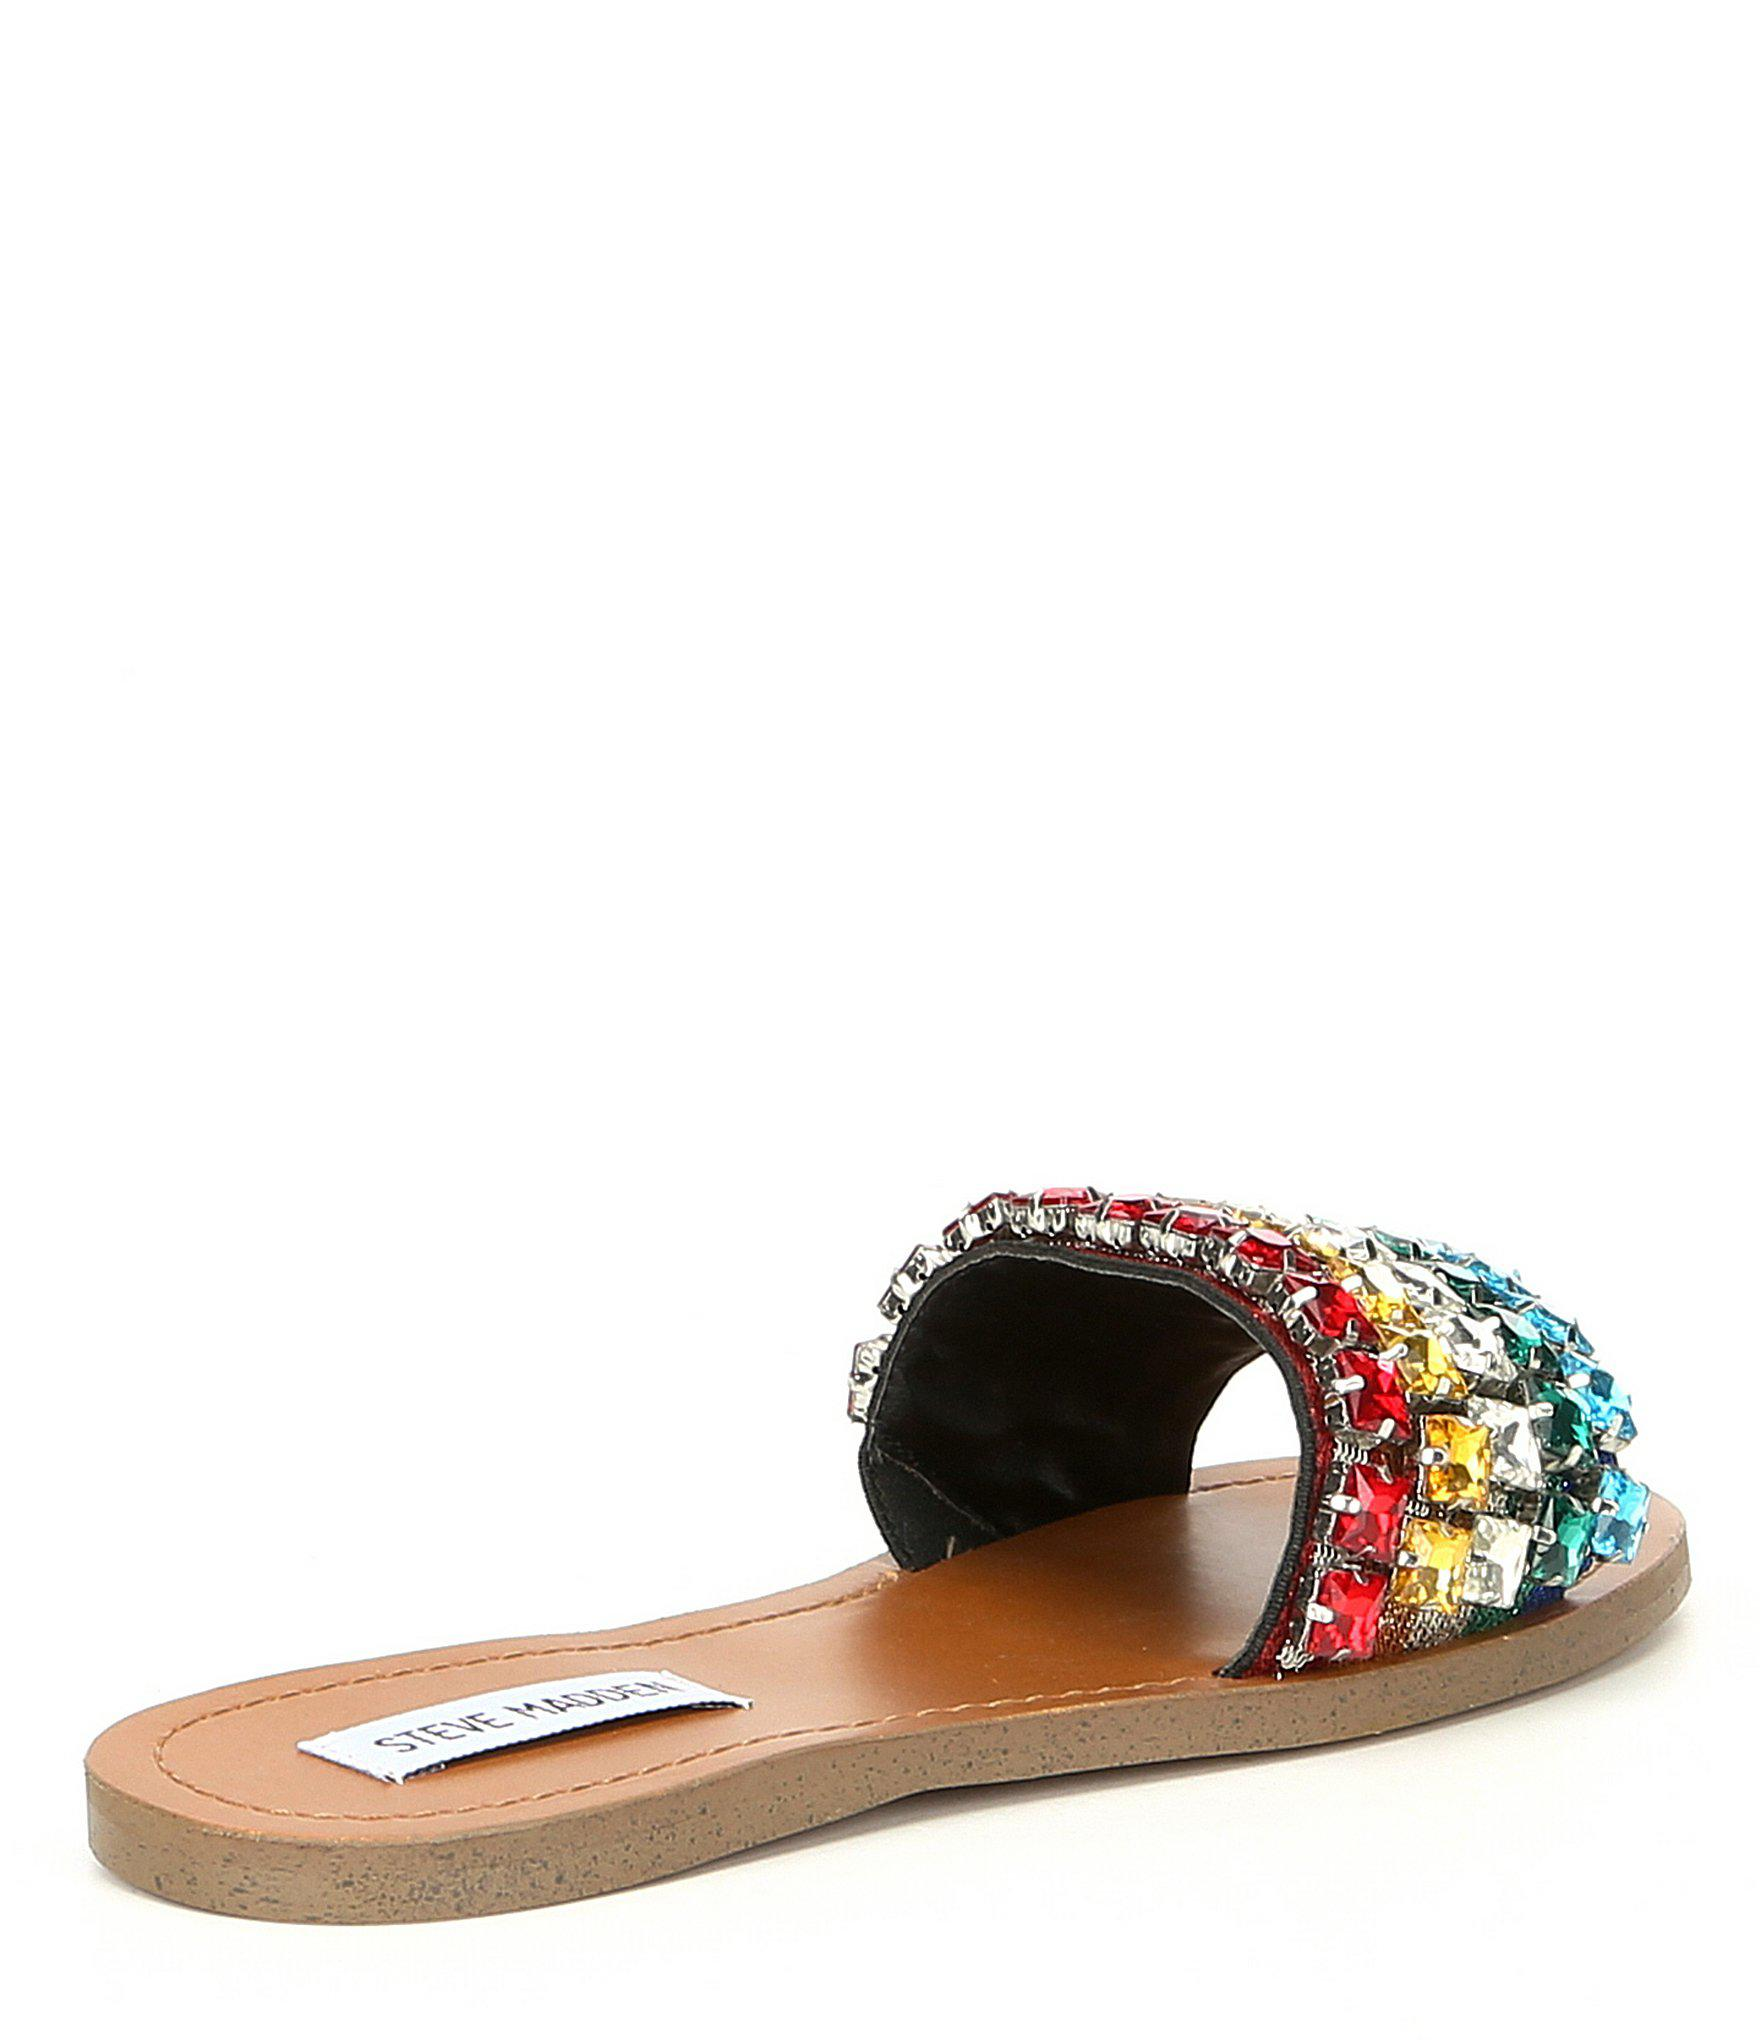 c630883da00 Steve Madden - Multicolor Serenade Slip On Rainbow Sandals - Lyst. View  fullscreen